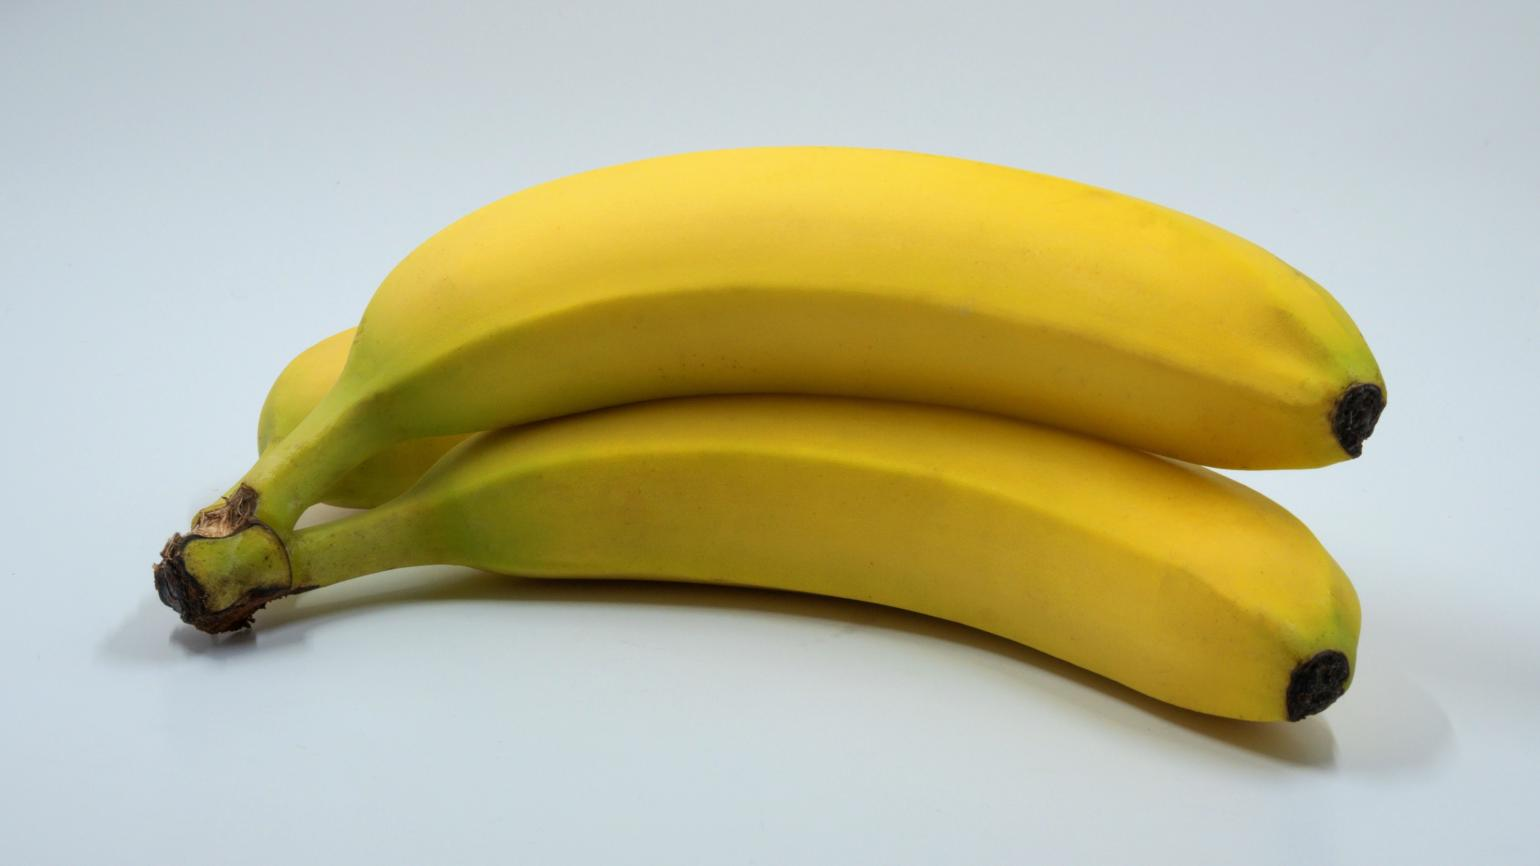 Slightly curved, yellow bananas